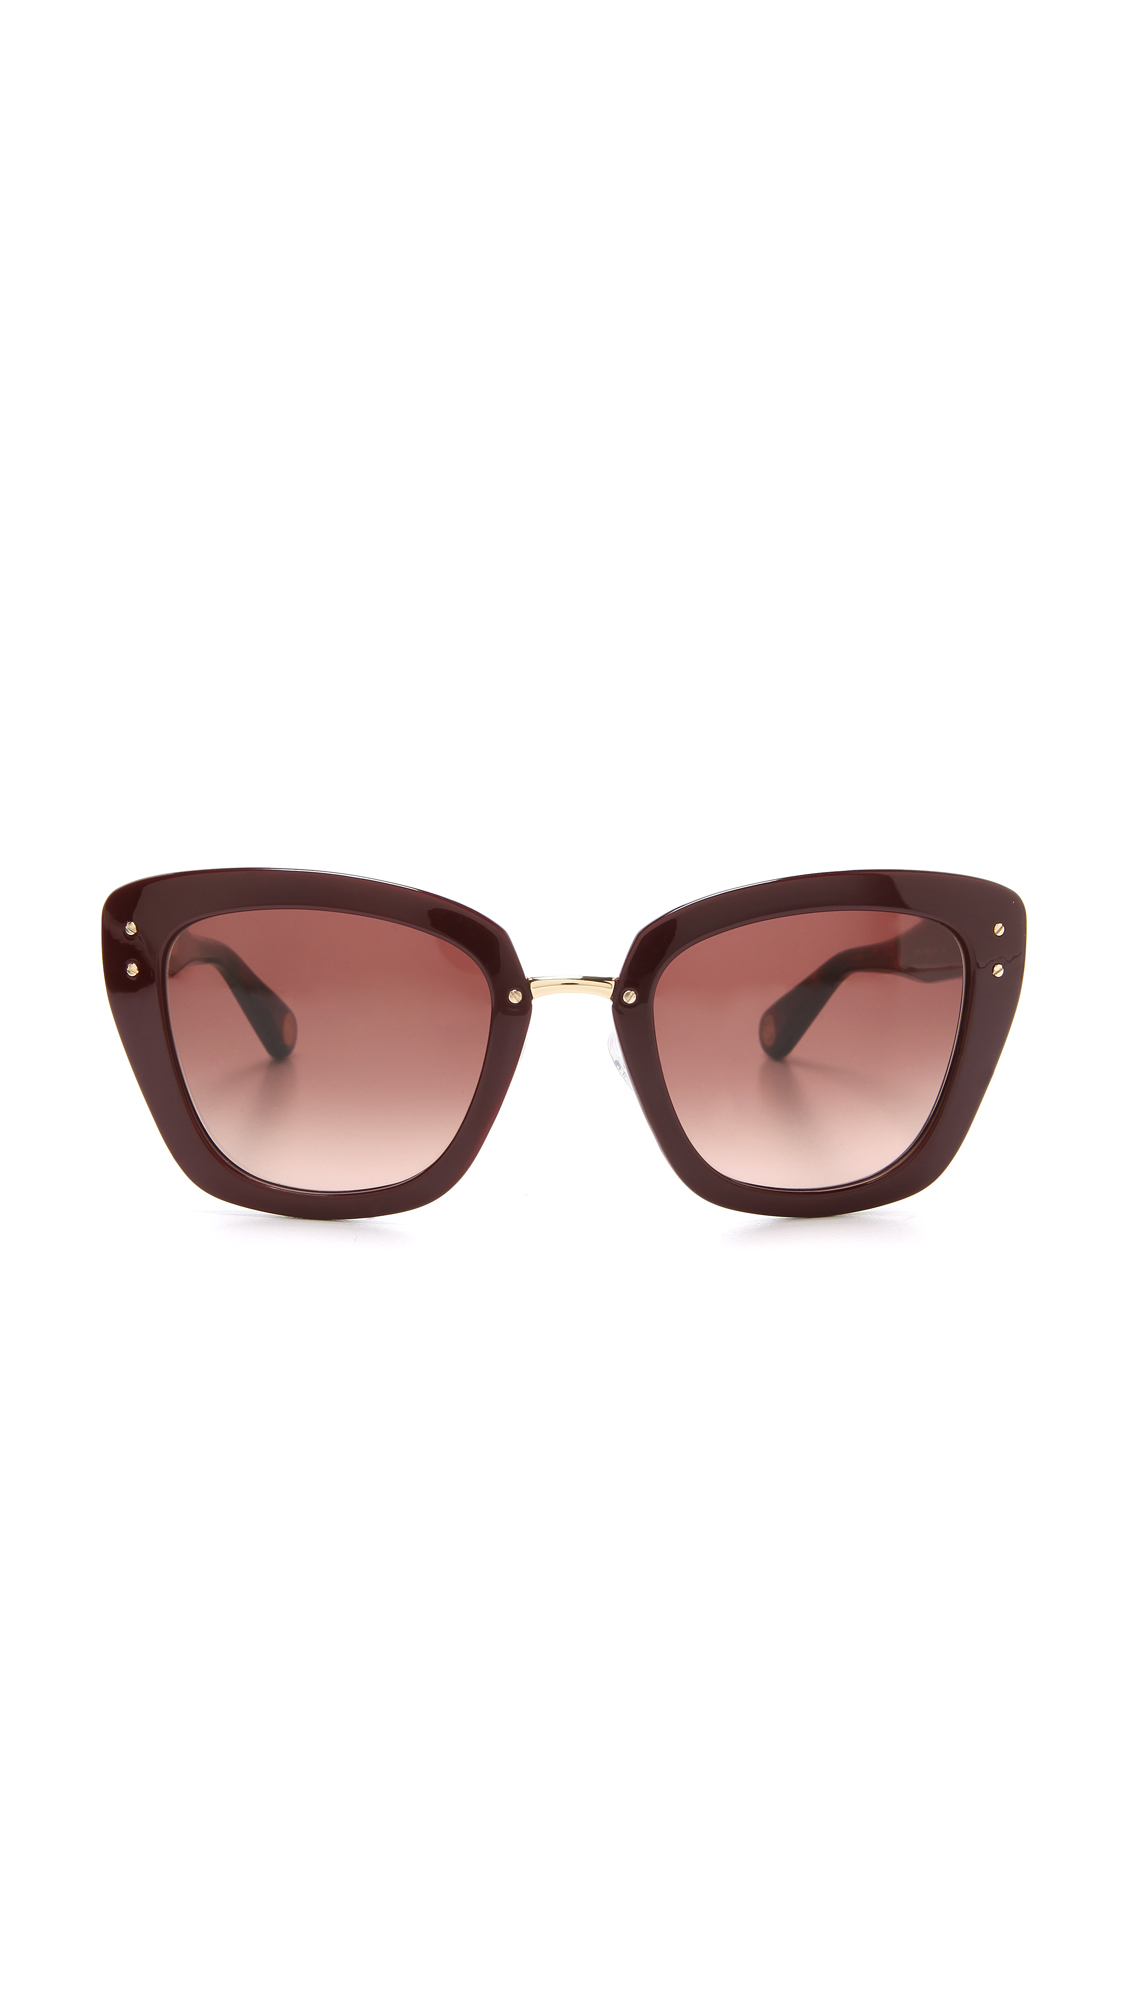 Marc Jacobs Sunglasses Thick Frame Sunglasses SHOPBOP